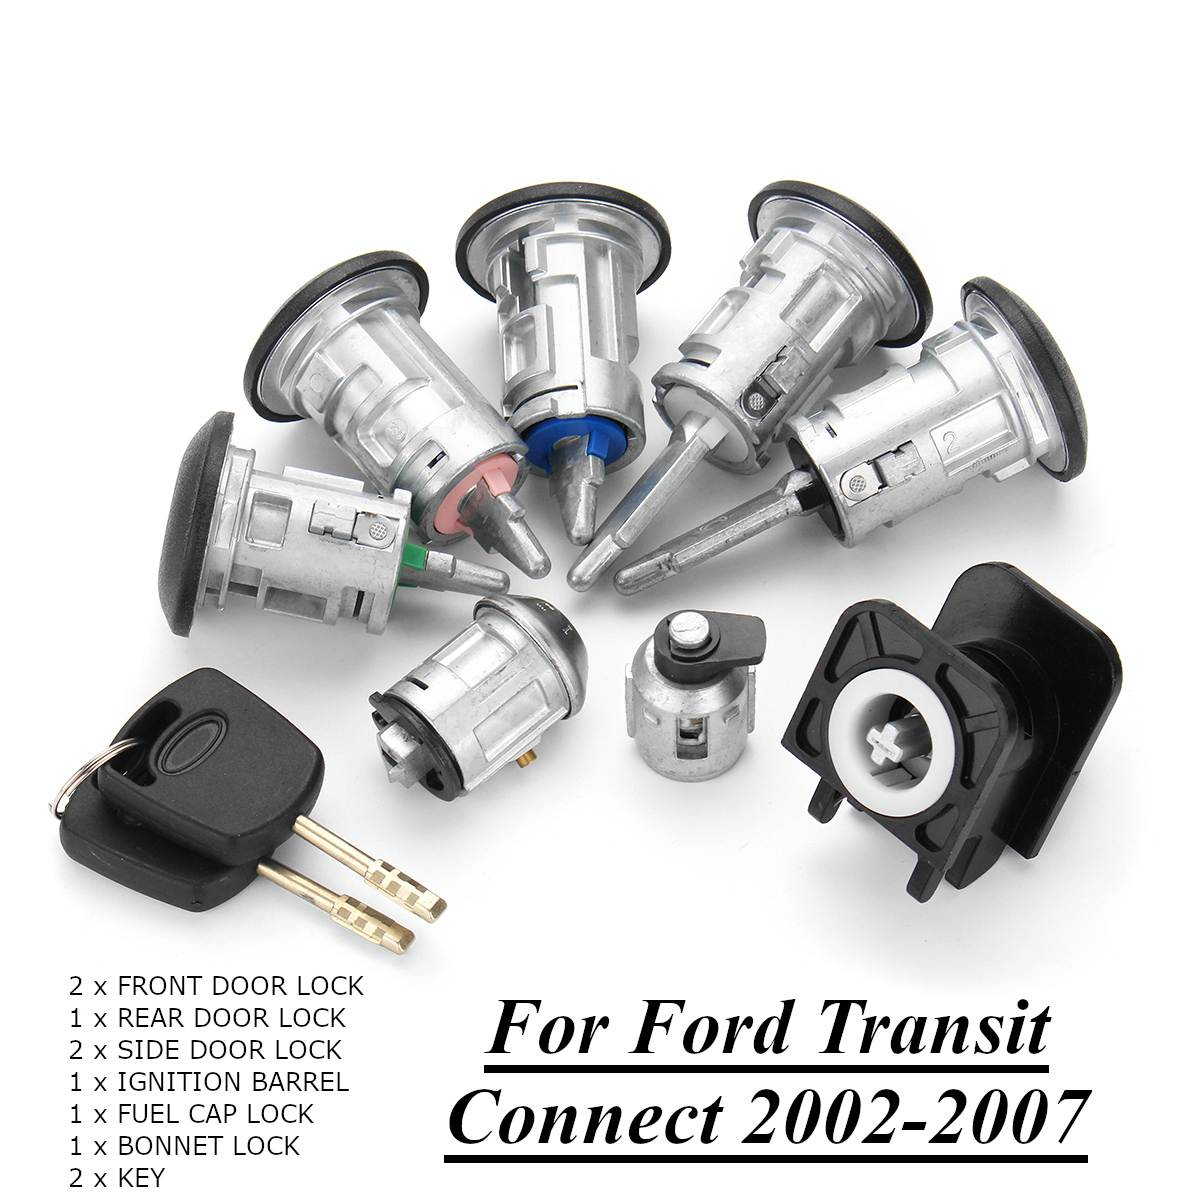 8pcs Ignition Switch Front + Rear Door Lock Bonnet Set With 2 Keys For Ford Transit Connect 2002-2007 4425134